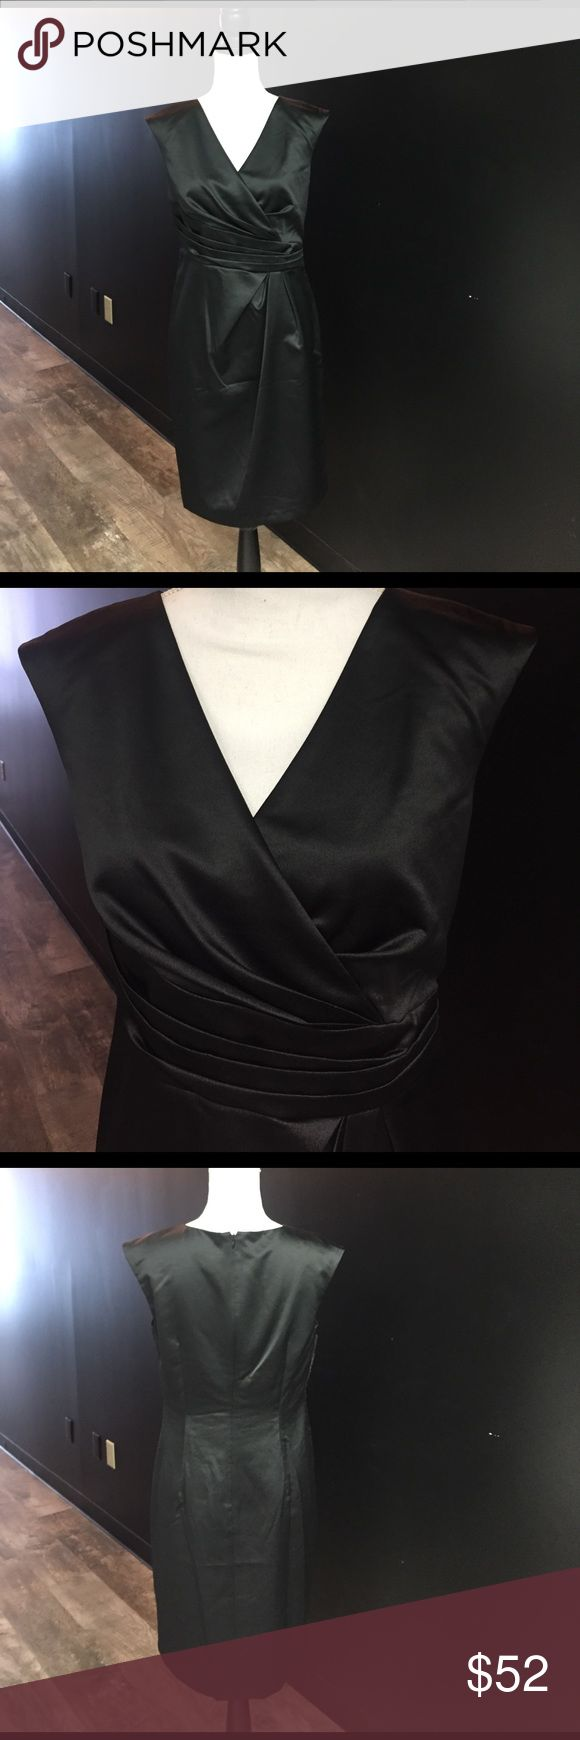 Adrianna papell black satin cocktail dress new Adrianna papell black satin cocktail dress new  beautiful dresss brand new without tags . Non smoking pet free home Adrianna Papell Dresses